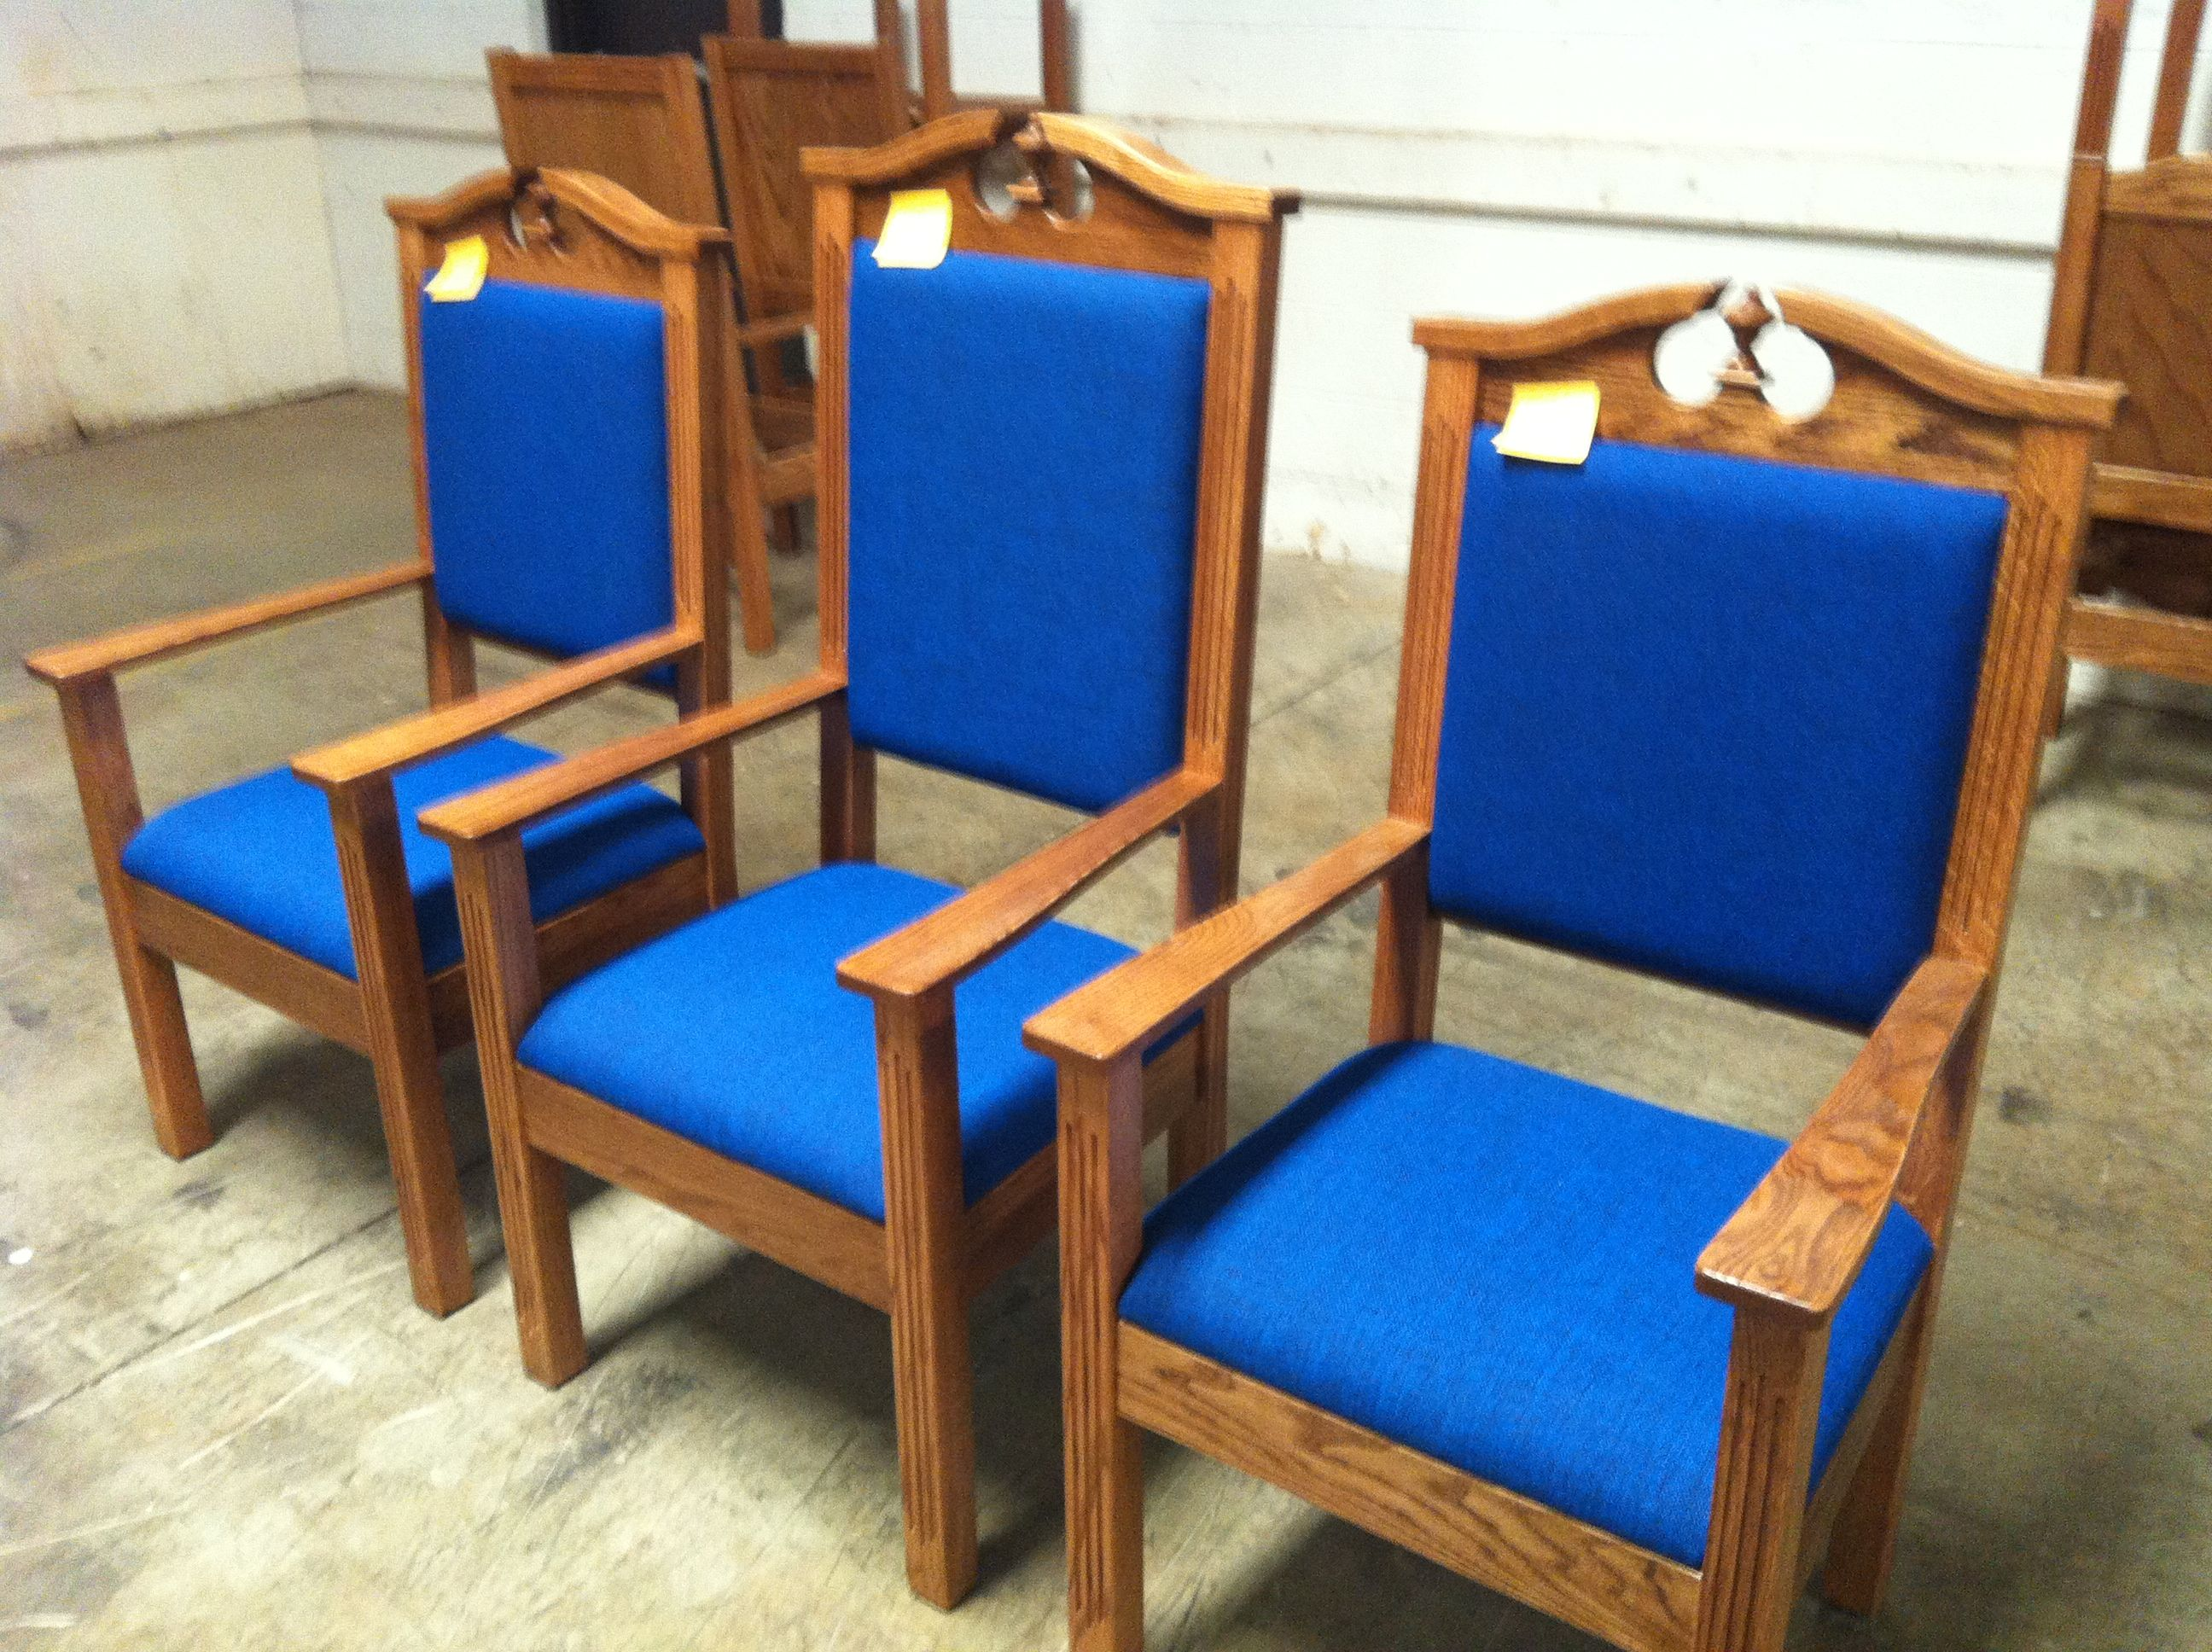 cheap church chairs serena and lily hanging chair ministers in royal blue fabric worshipchairs